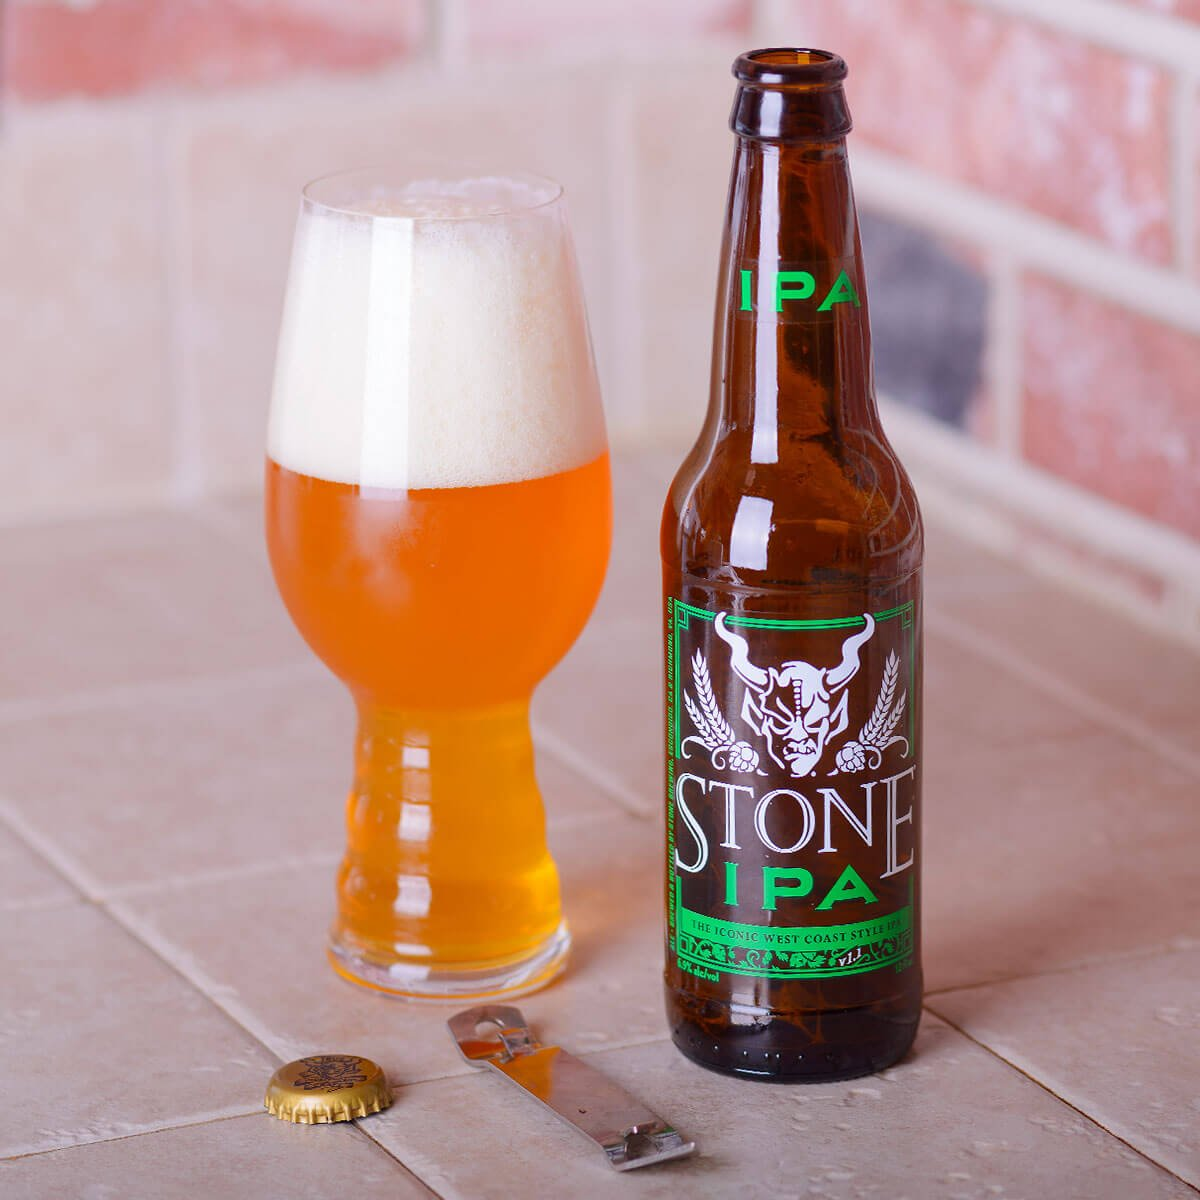 Stone IPA, an American IPA by Stone Brewing